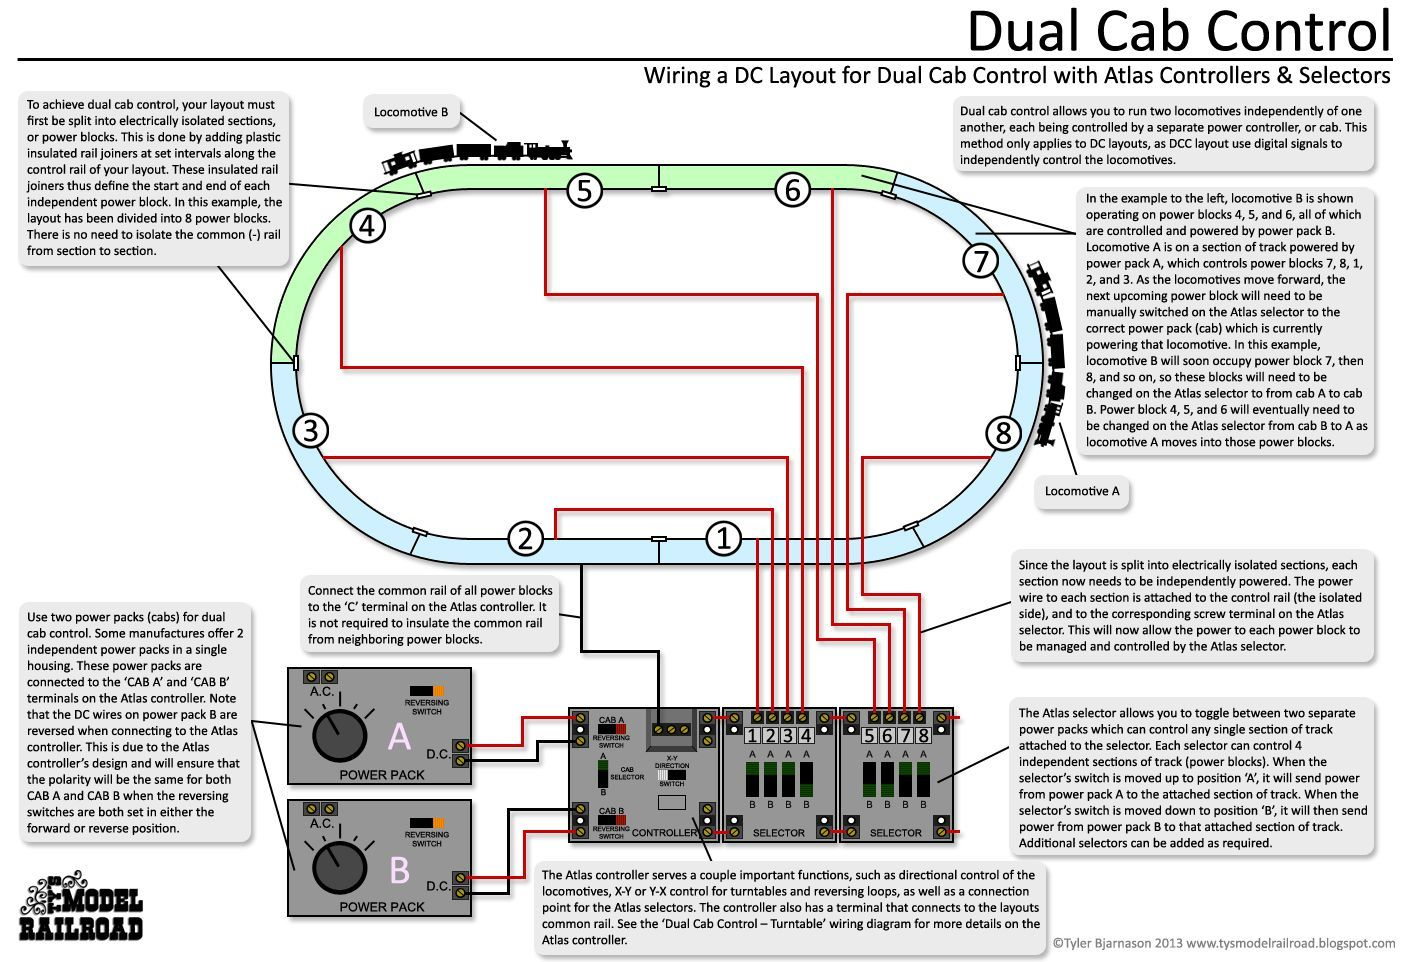 medium resolution of atlas model railroad wiring how to wire a layout for dual cab control using an